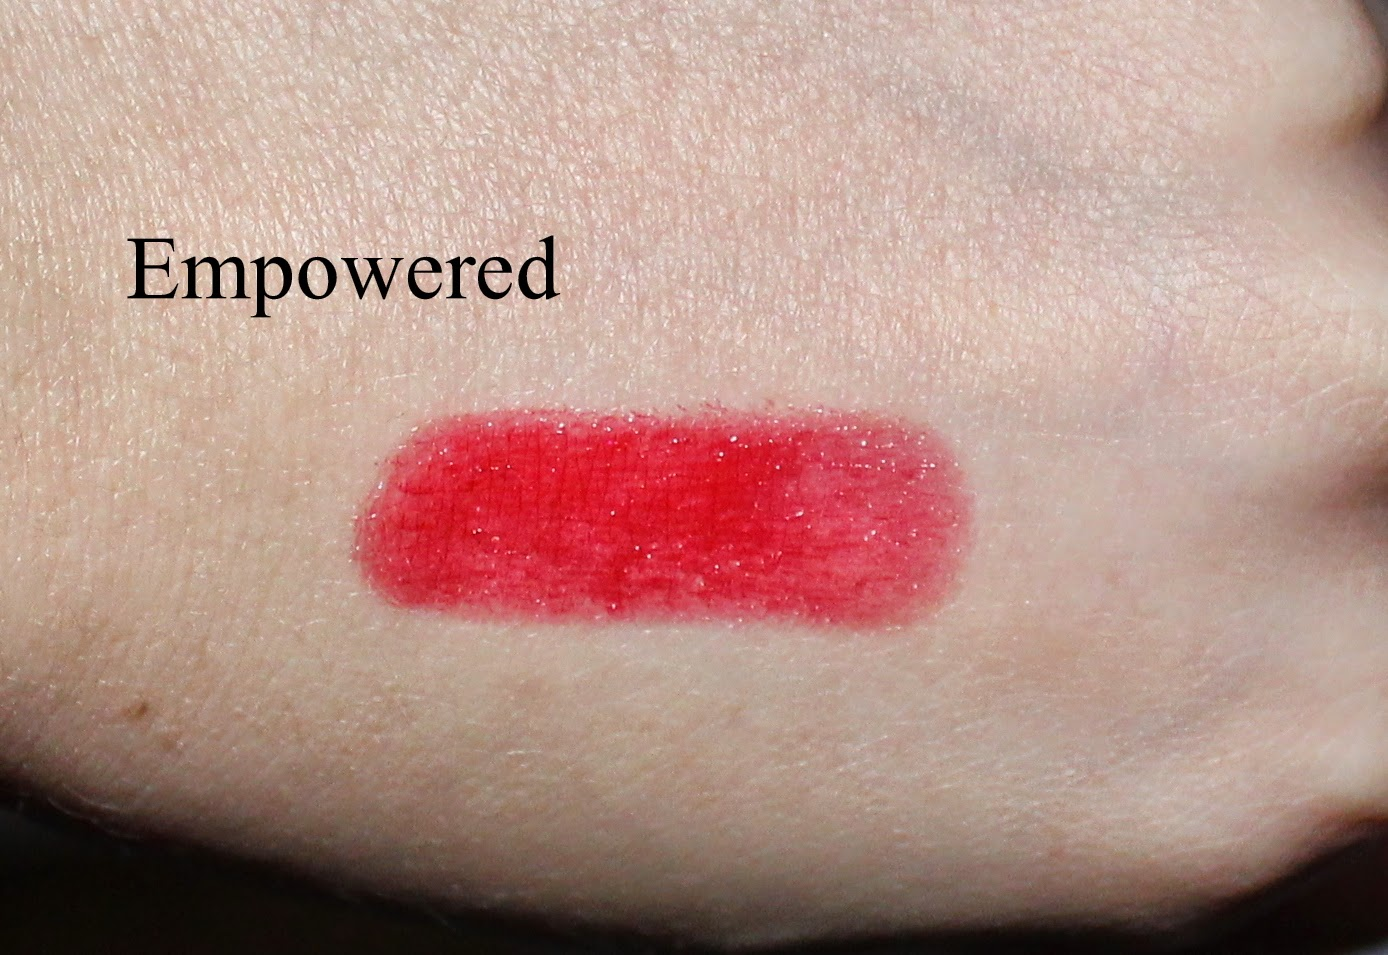 Estée Lauder Pure Color Envy Shine Sculpting Lipstick in Empowered